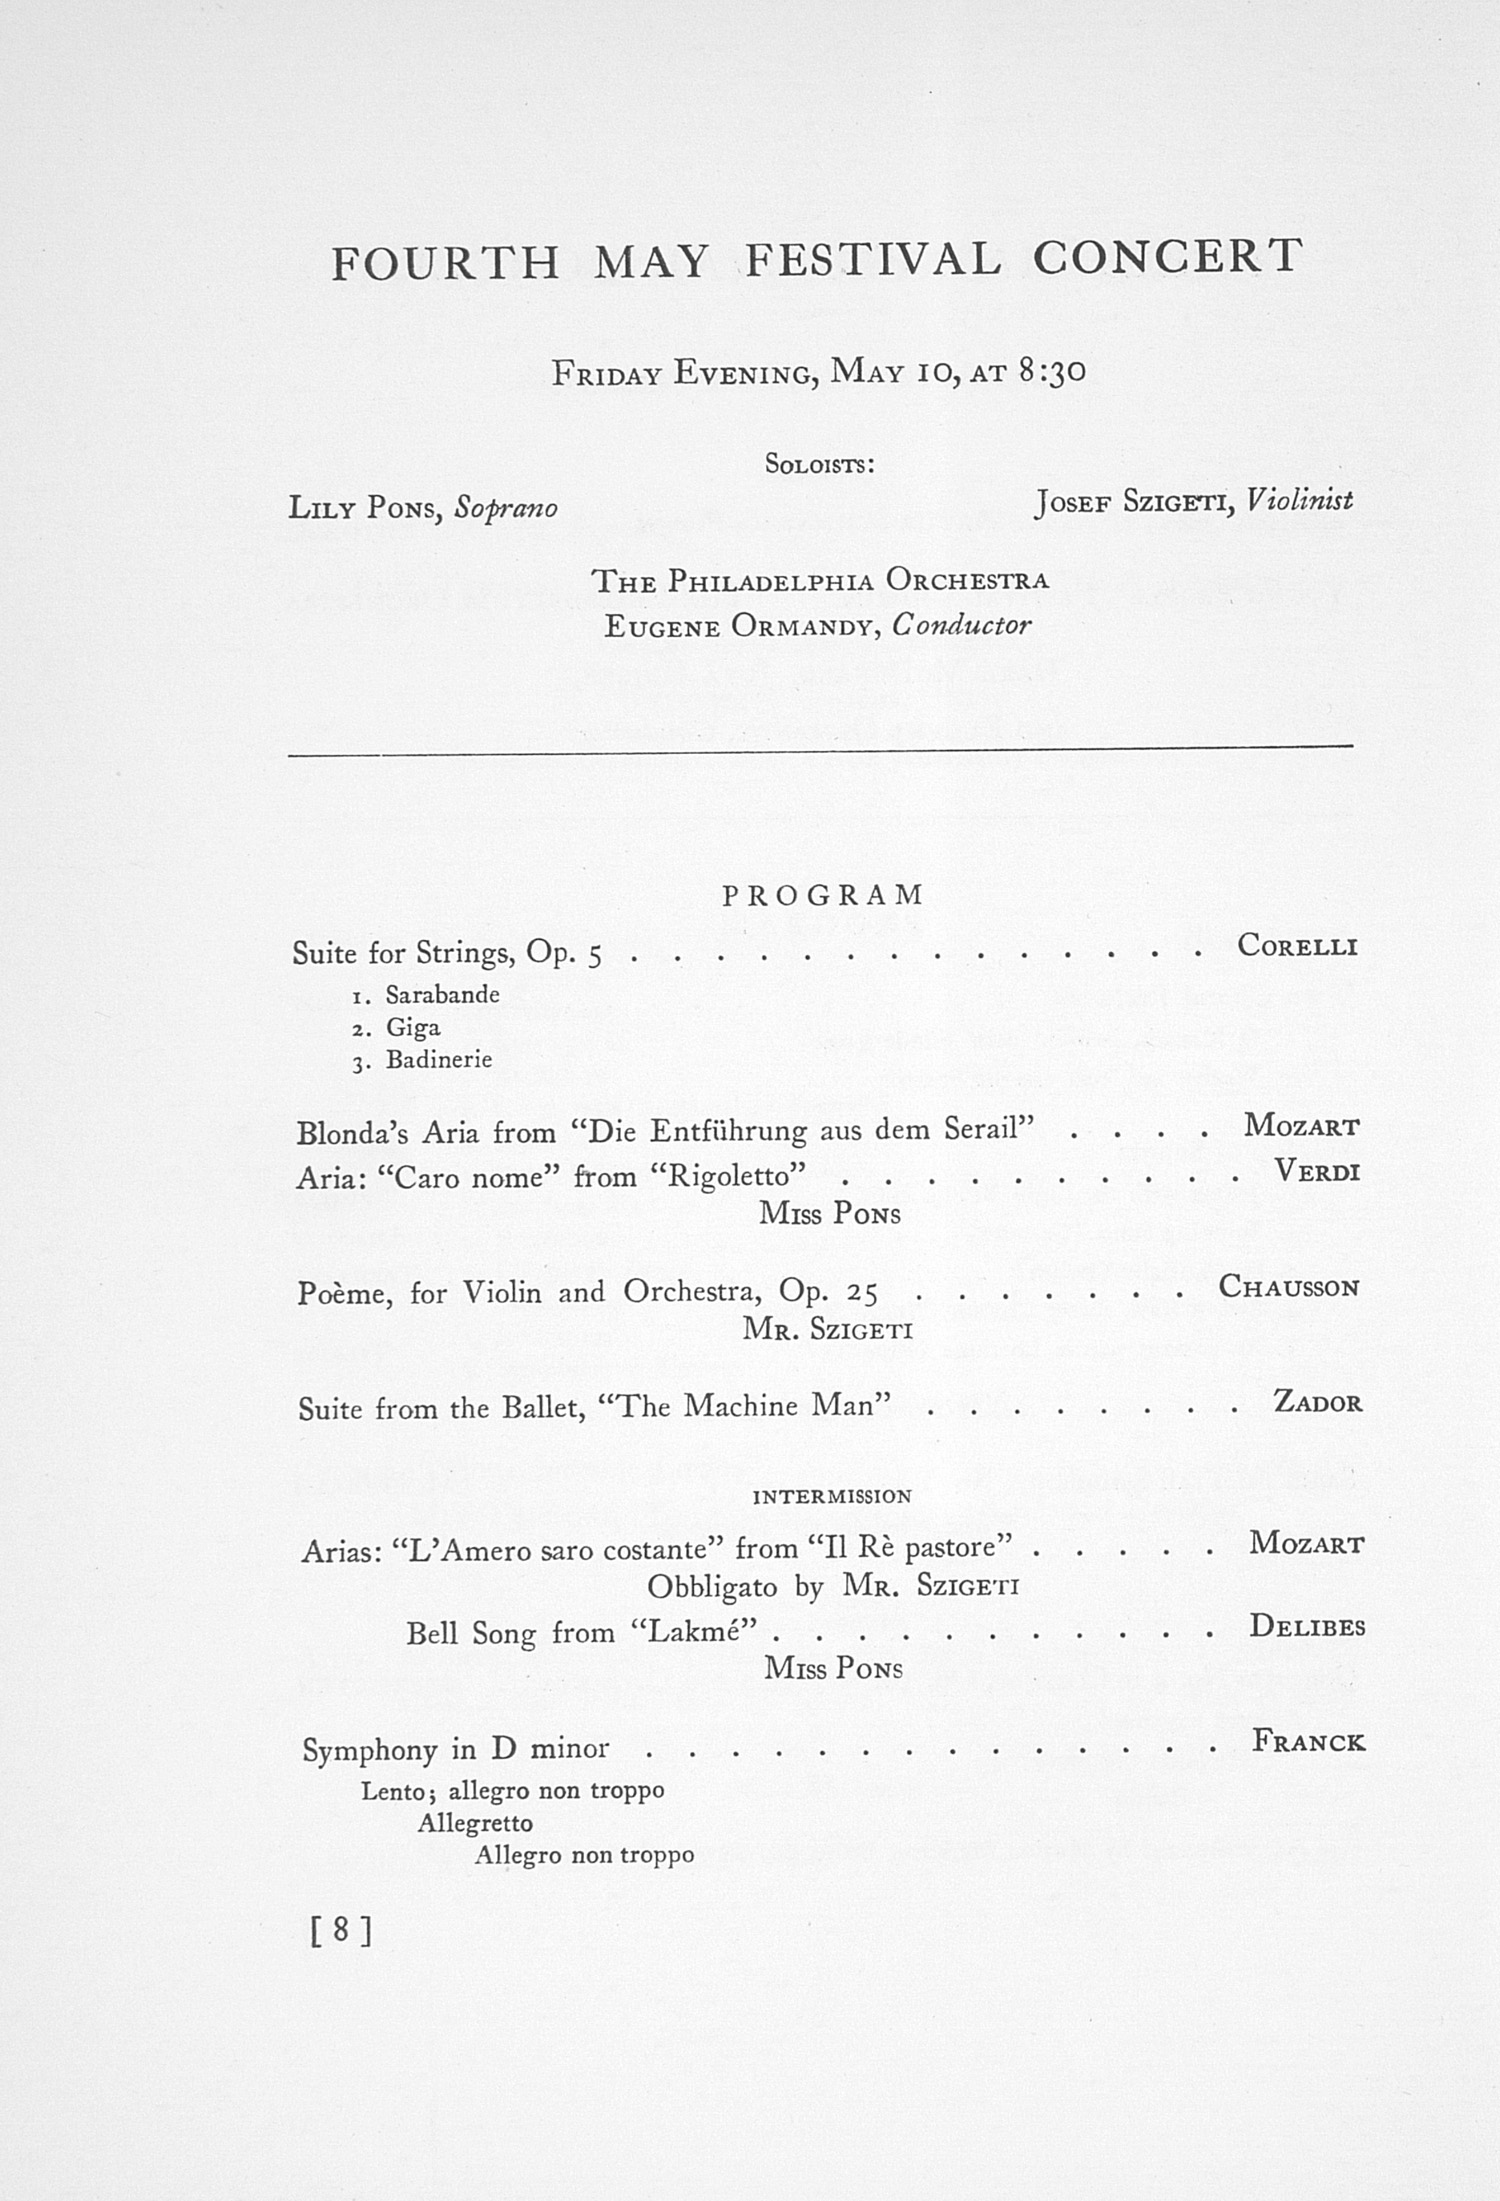 UMS Concert Program, May 8, 9, 10, And 11, 1940: The Forty-seventh Annual May Festival -- The Philadelphia Orchestra image